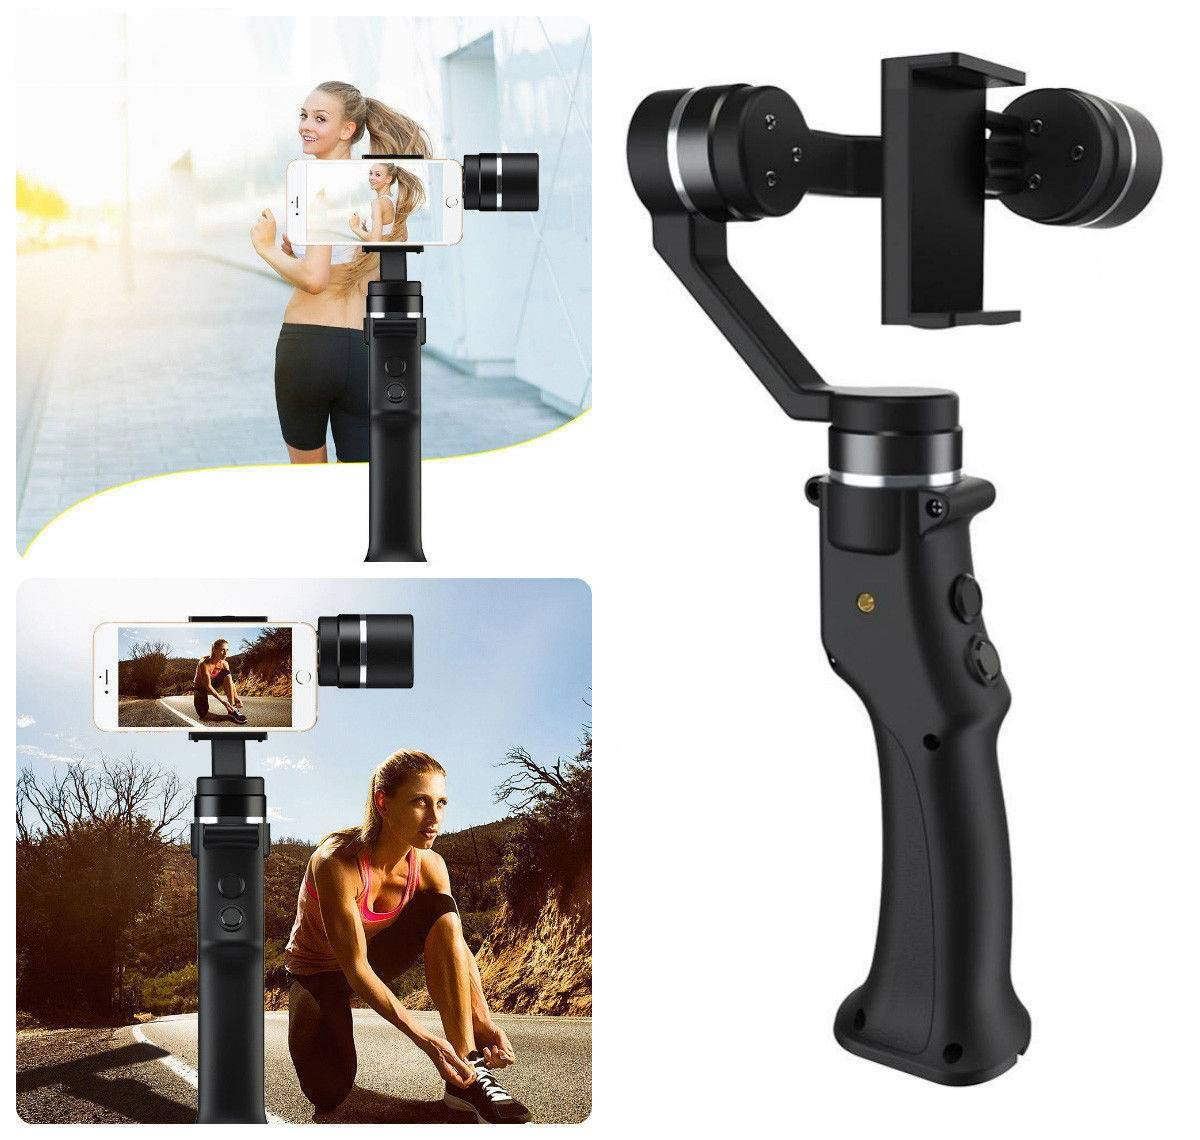 BT Beyondsky Eyemind 3-Axis Handheld Mobile Gimbal Stabilizer for Smart Phone Action Camera Panorama 180D for iPhone X Plus Sports Camera